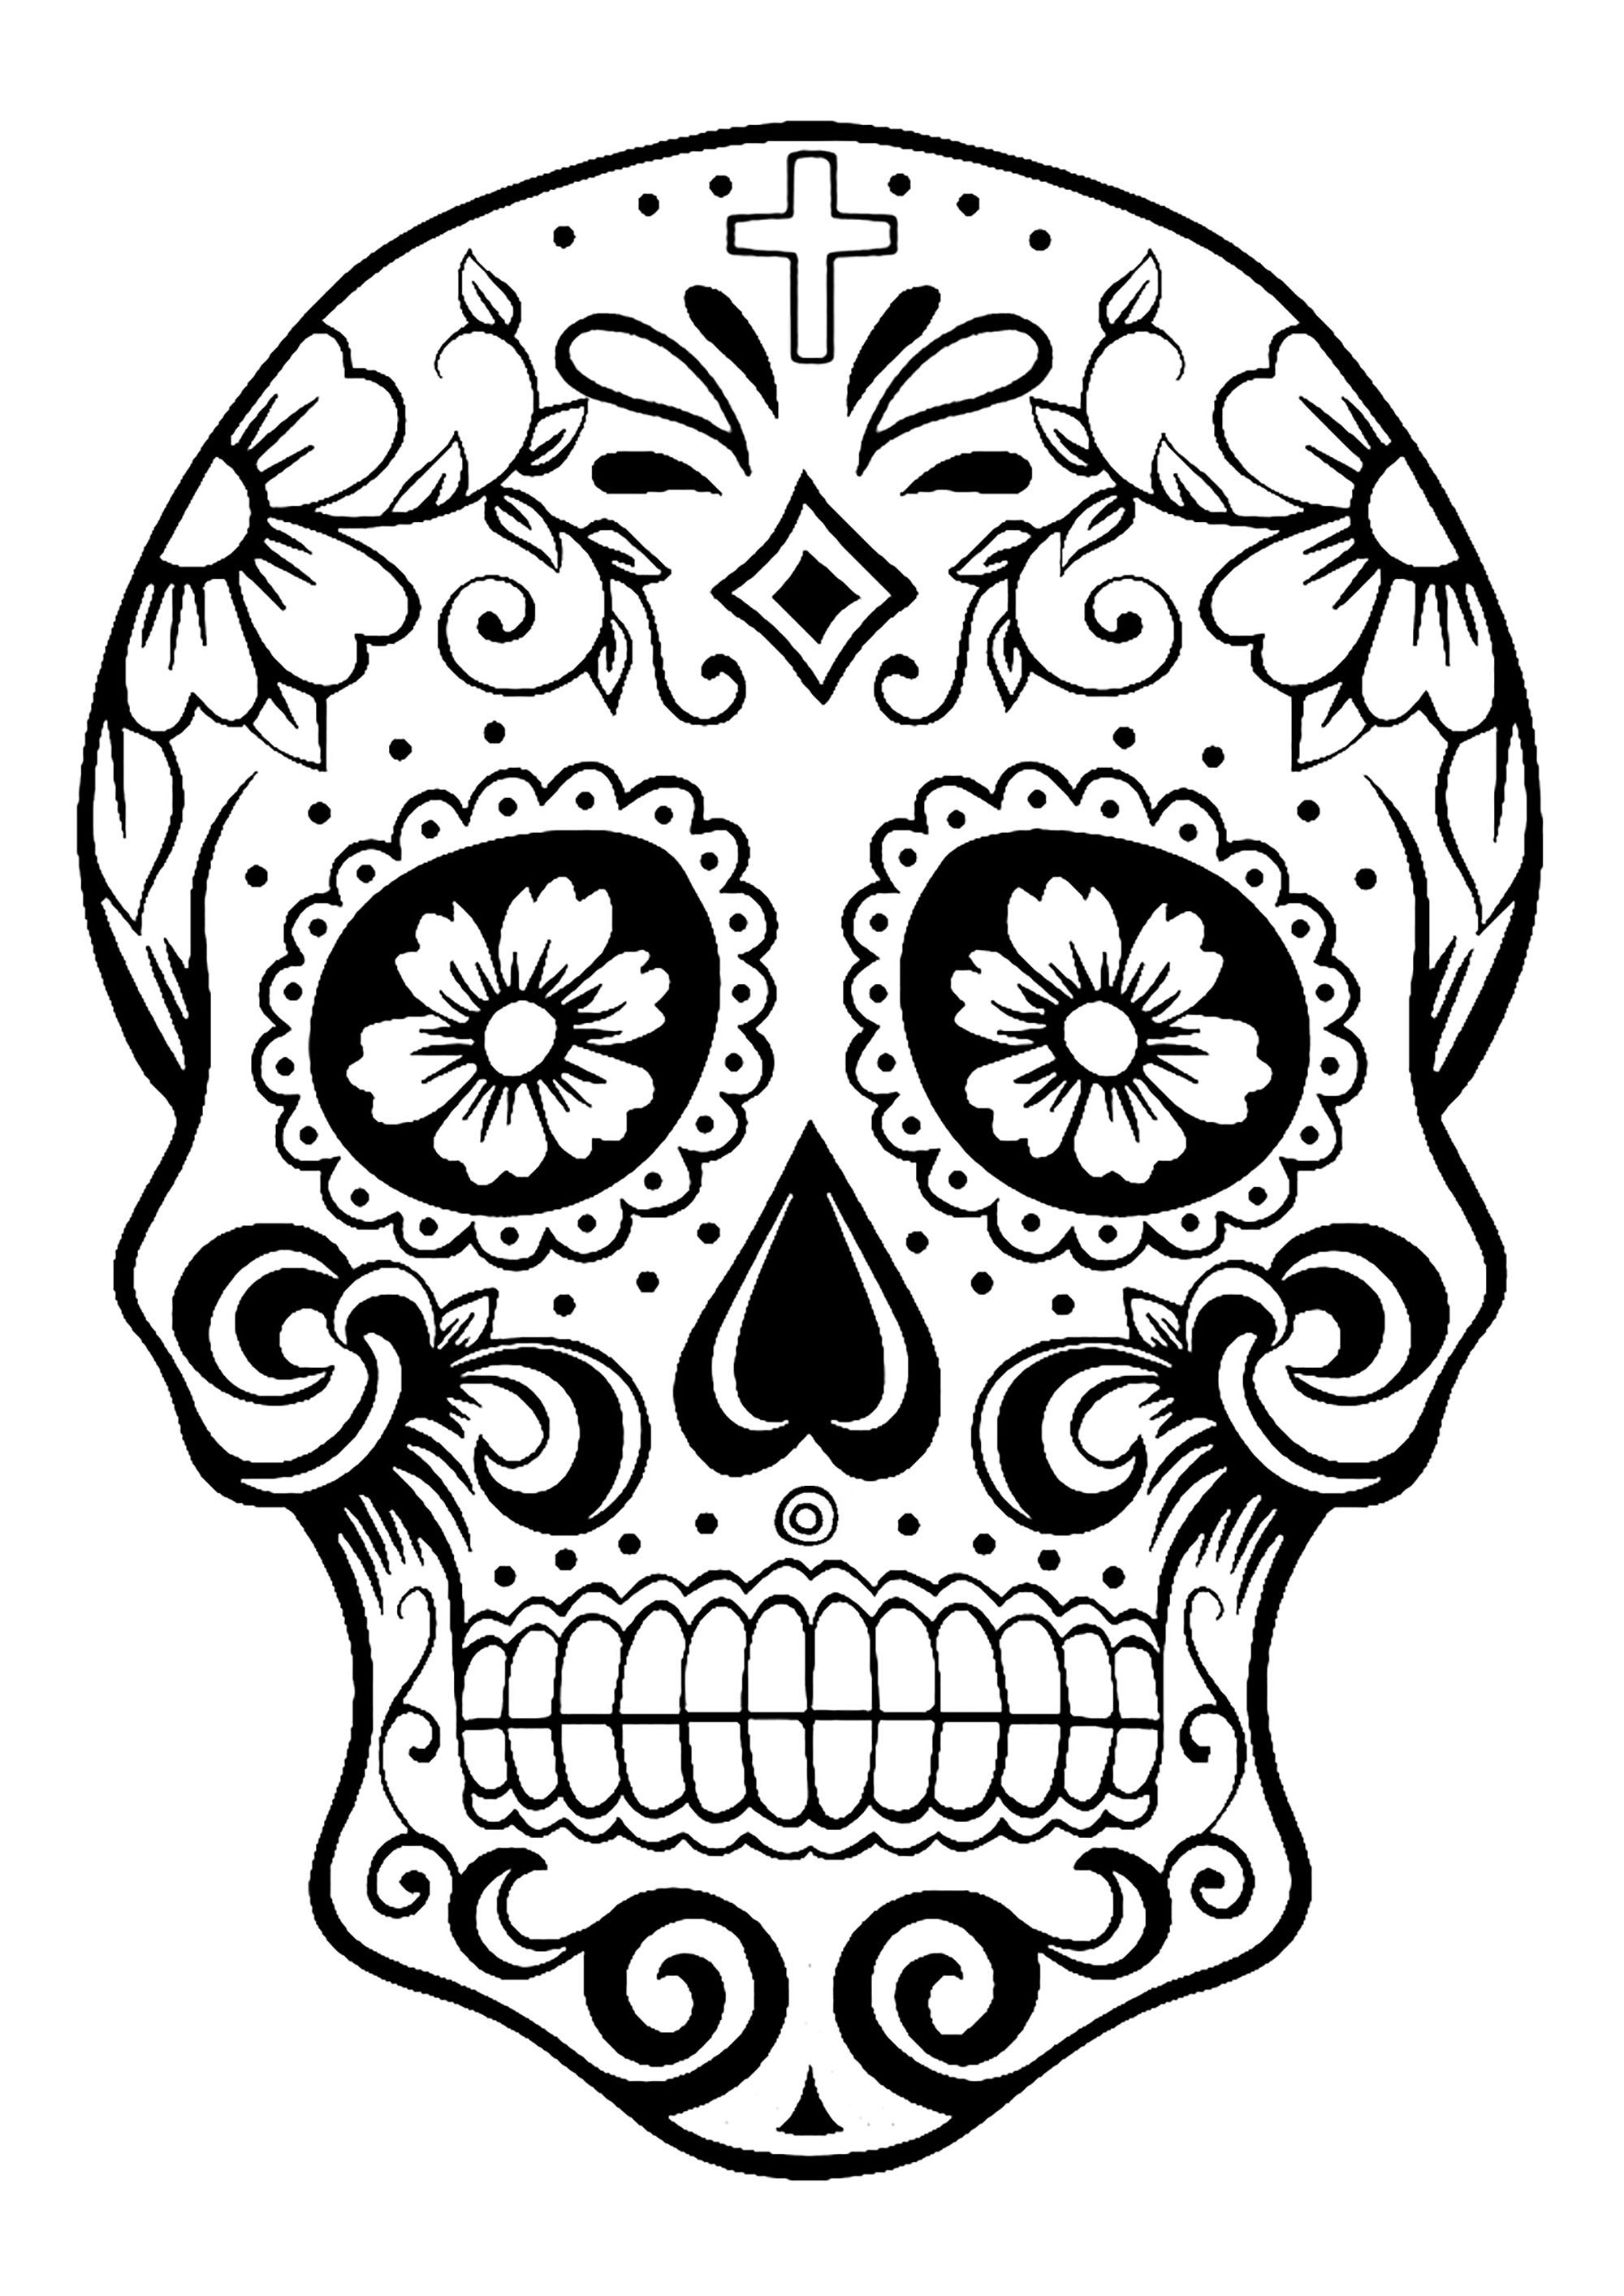 El Dia De Los Muertos 2 - Fishes Coloring Pages For Adults Adult